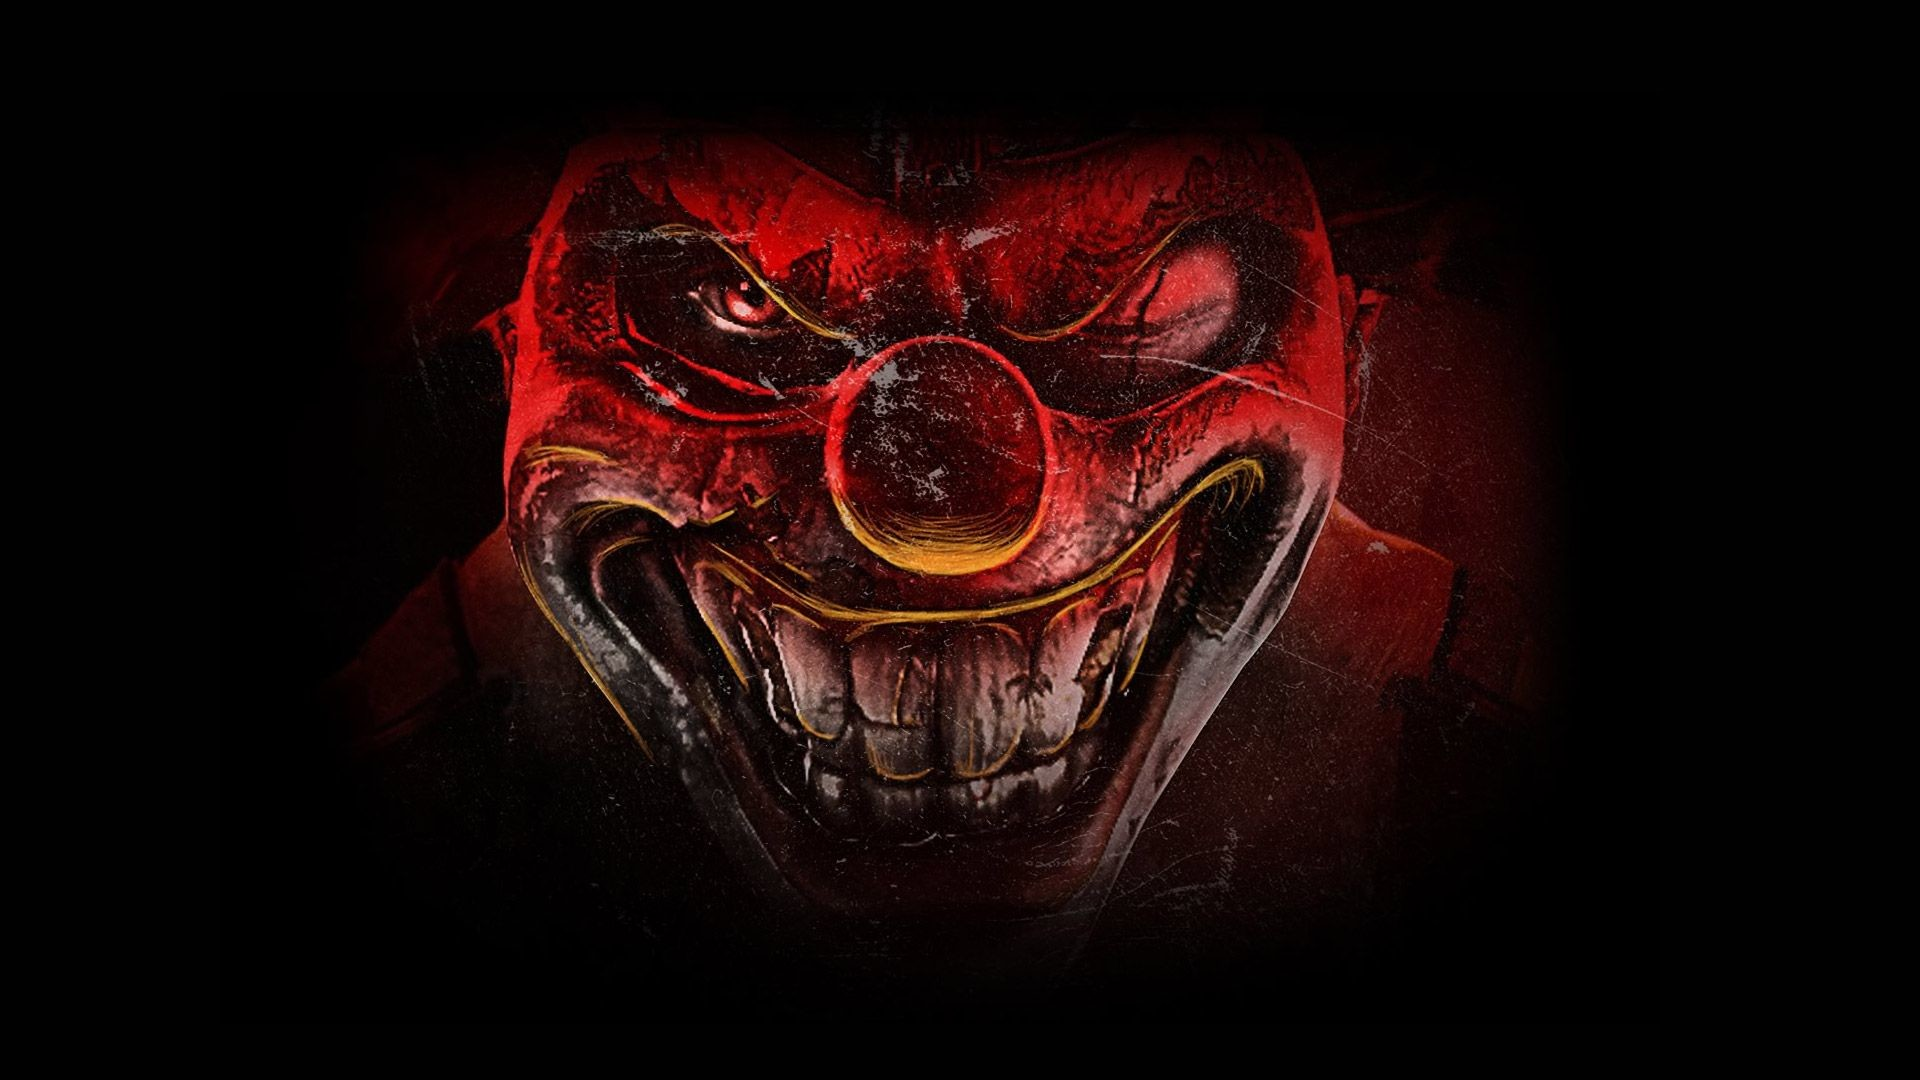 1920x1080 16 twisted metal hd wallpapers | backgrounds - wallpaper abyss | all